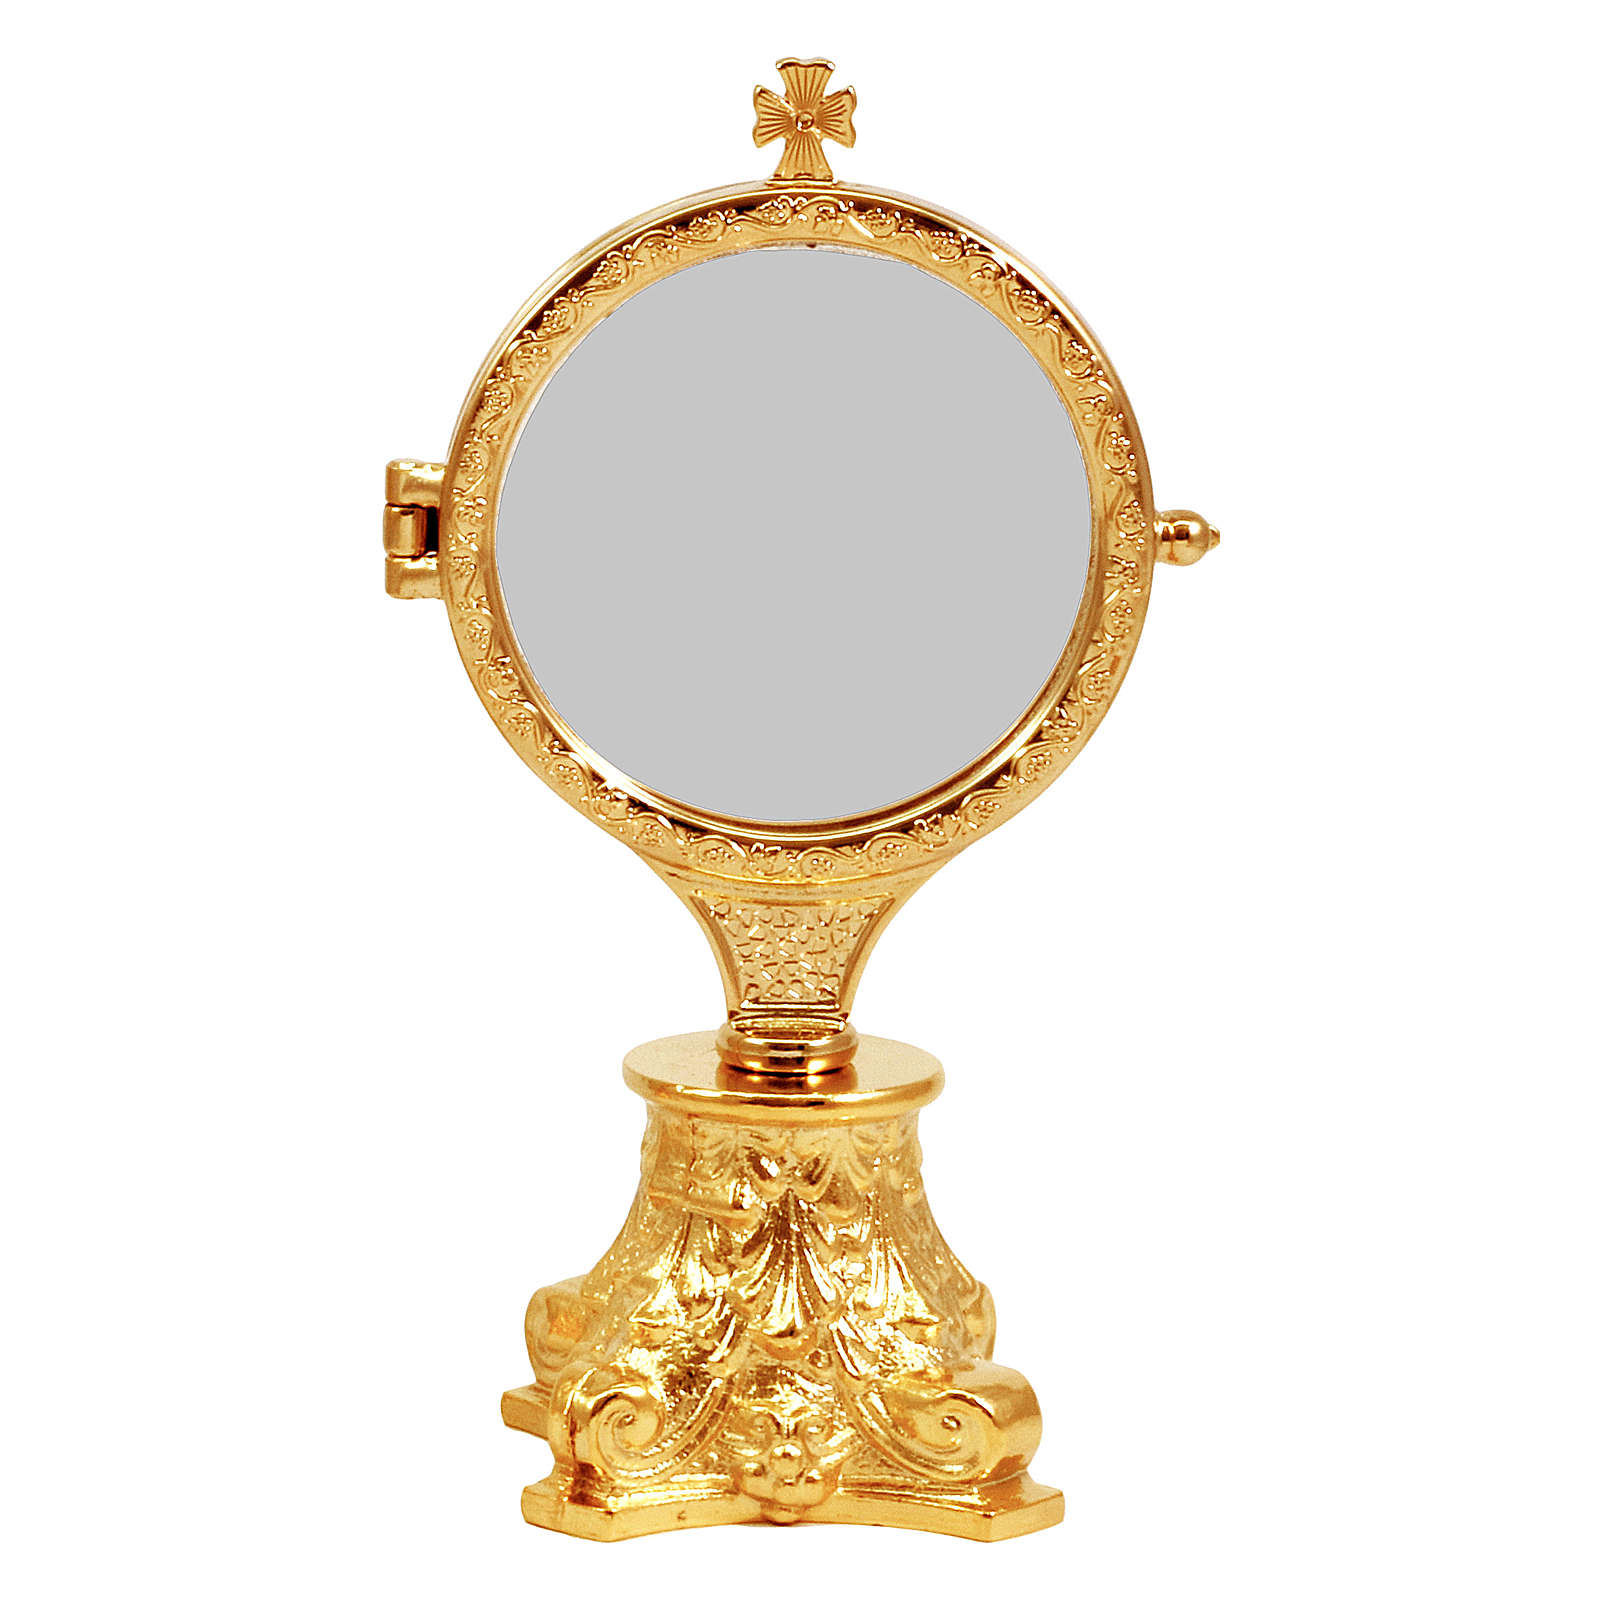 Golden monstrance with decorative capital as base, h. 17.5 cm 4